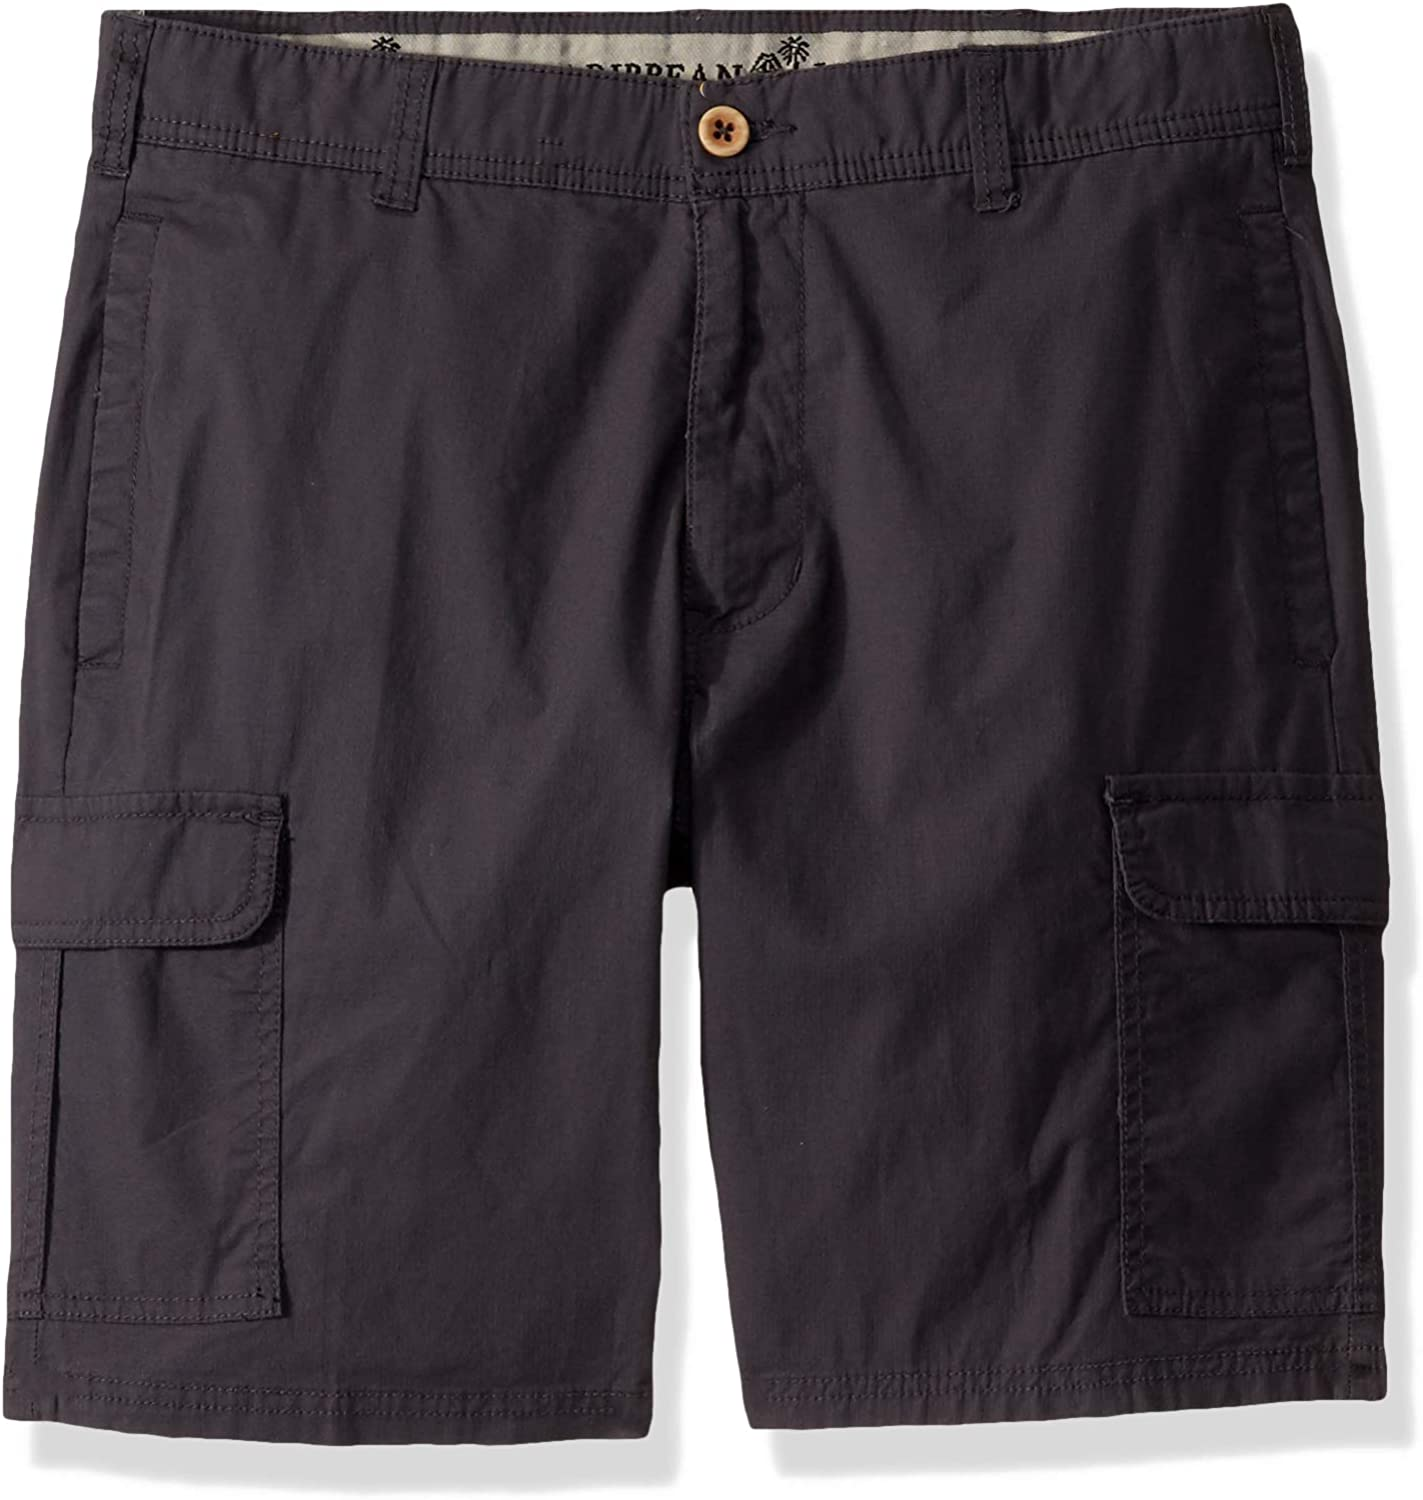 Max Spring new work one after another 78% OFF Caribbean Joe Men's Relaxed Classic Fit Stretch Messenger Cargo